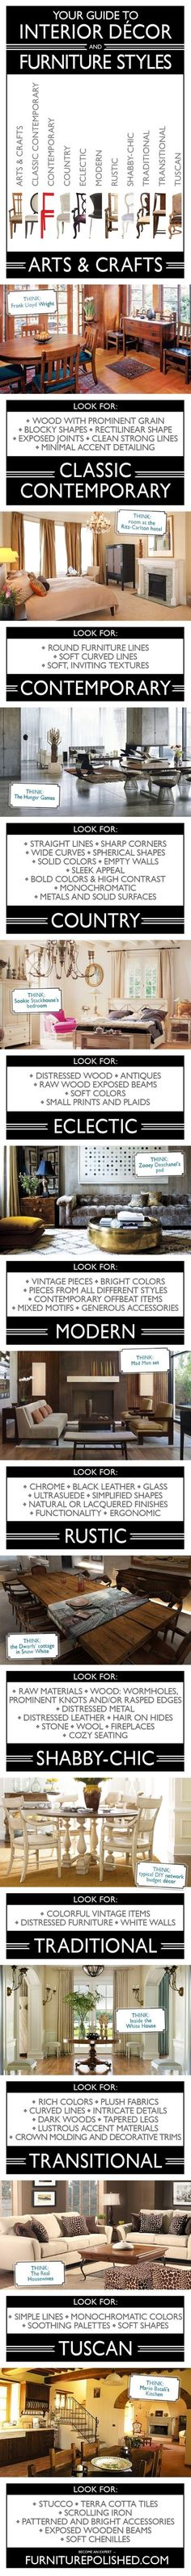 Interior Design [infographic]